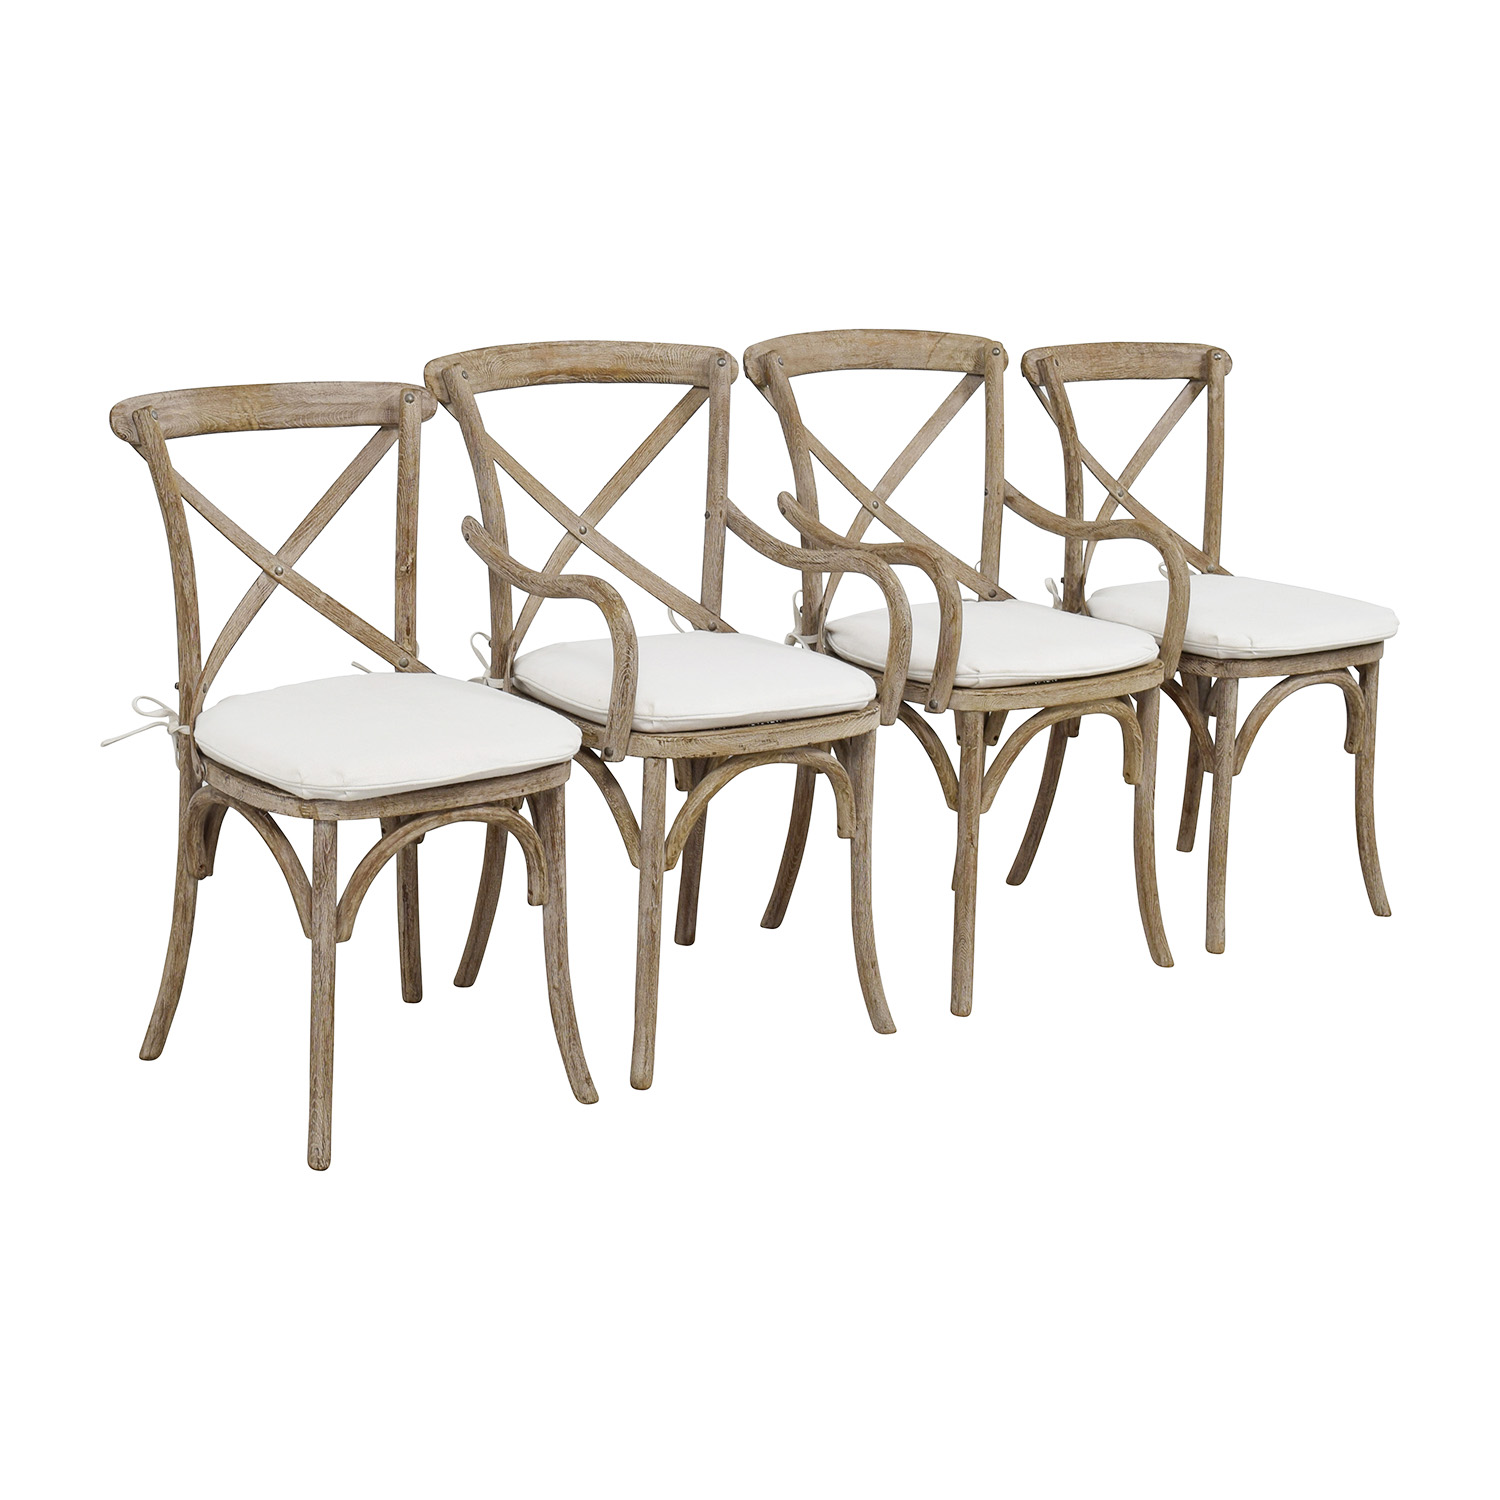 Used Restoration Hardware Outdoor Furniture peenmediacom : used restoration hardware madeleine natural wood chairs from www.peenmedia.com size 1500 x 1500 jpeg 282kB